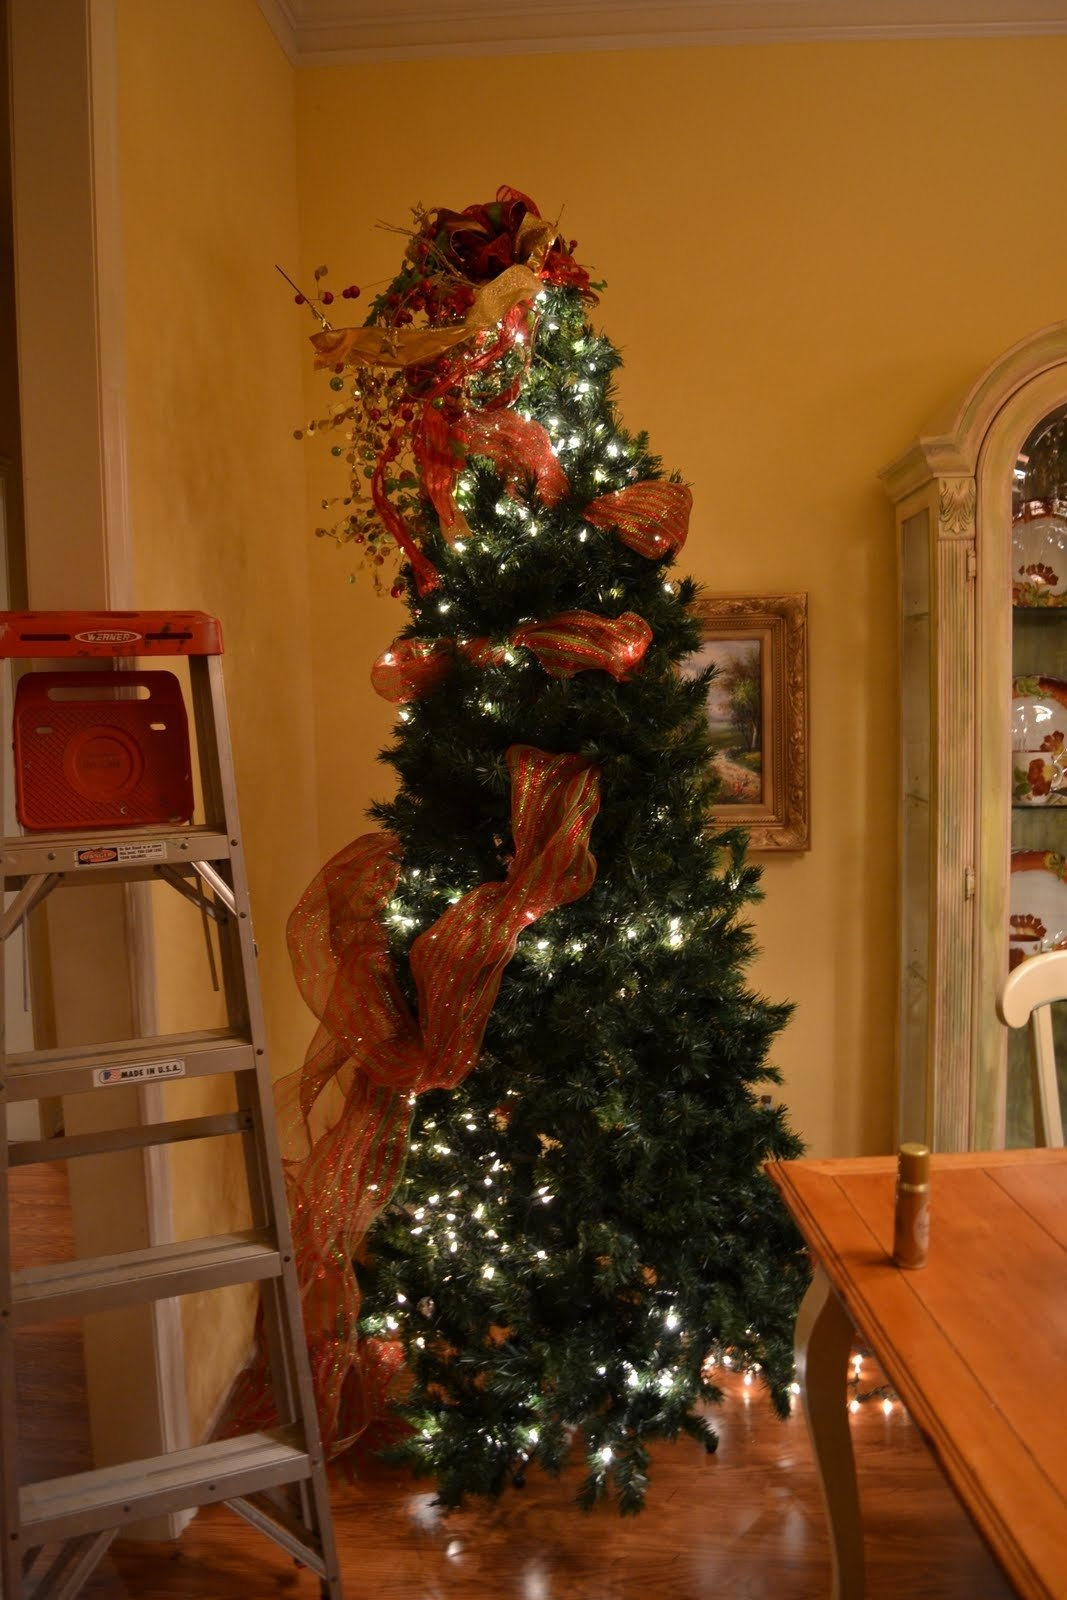 10 Fabulous Decorating With Mesh Ribbon Ideas kristens creations decorating a christmas tree with mesh ribbon 2021